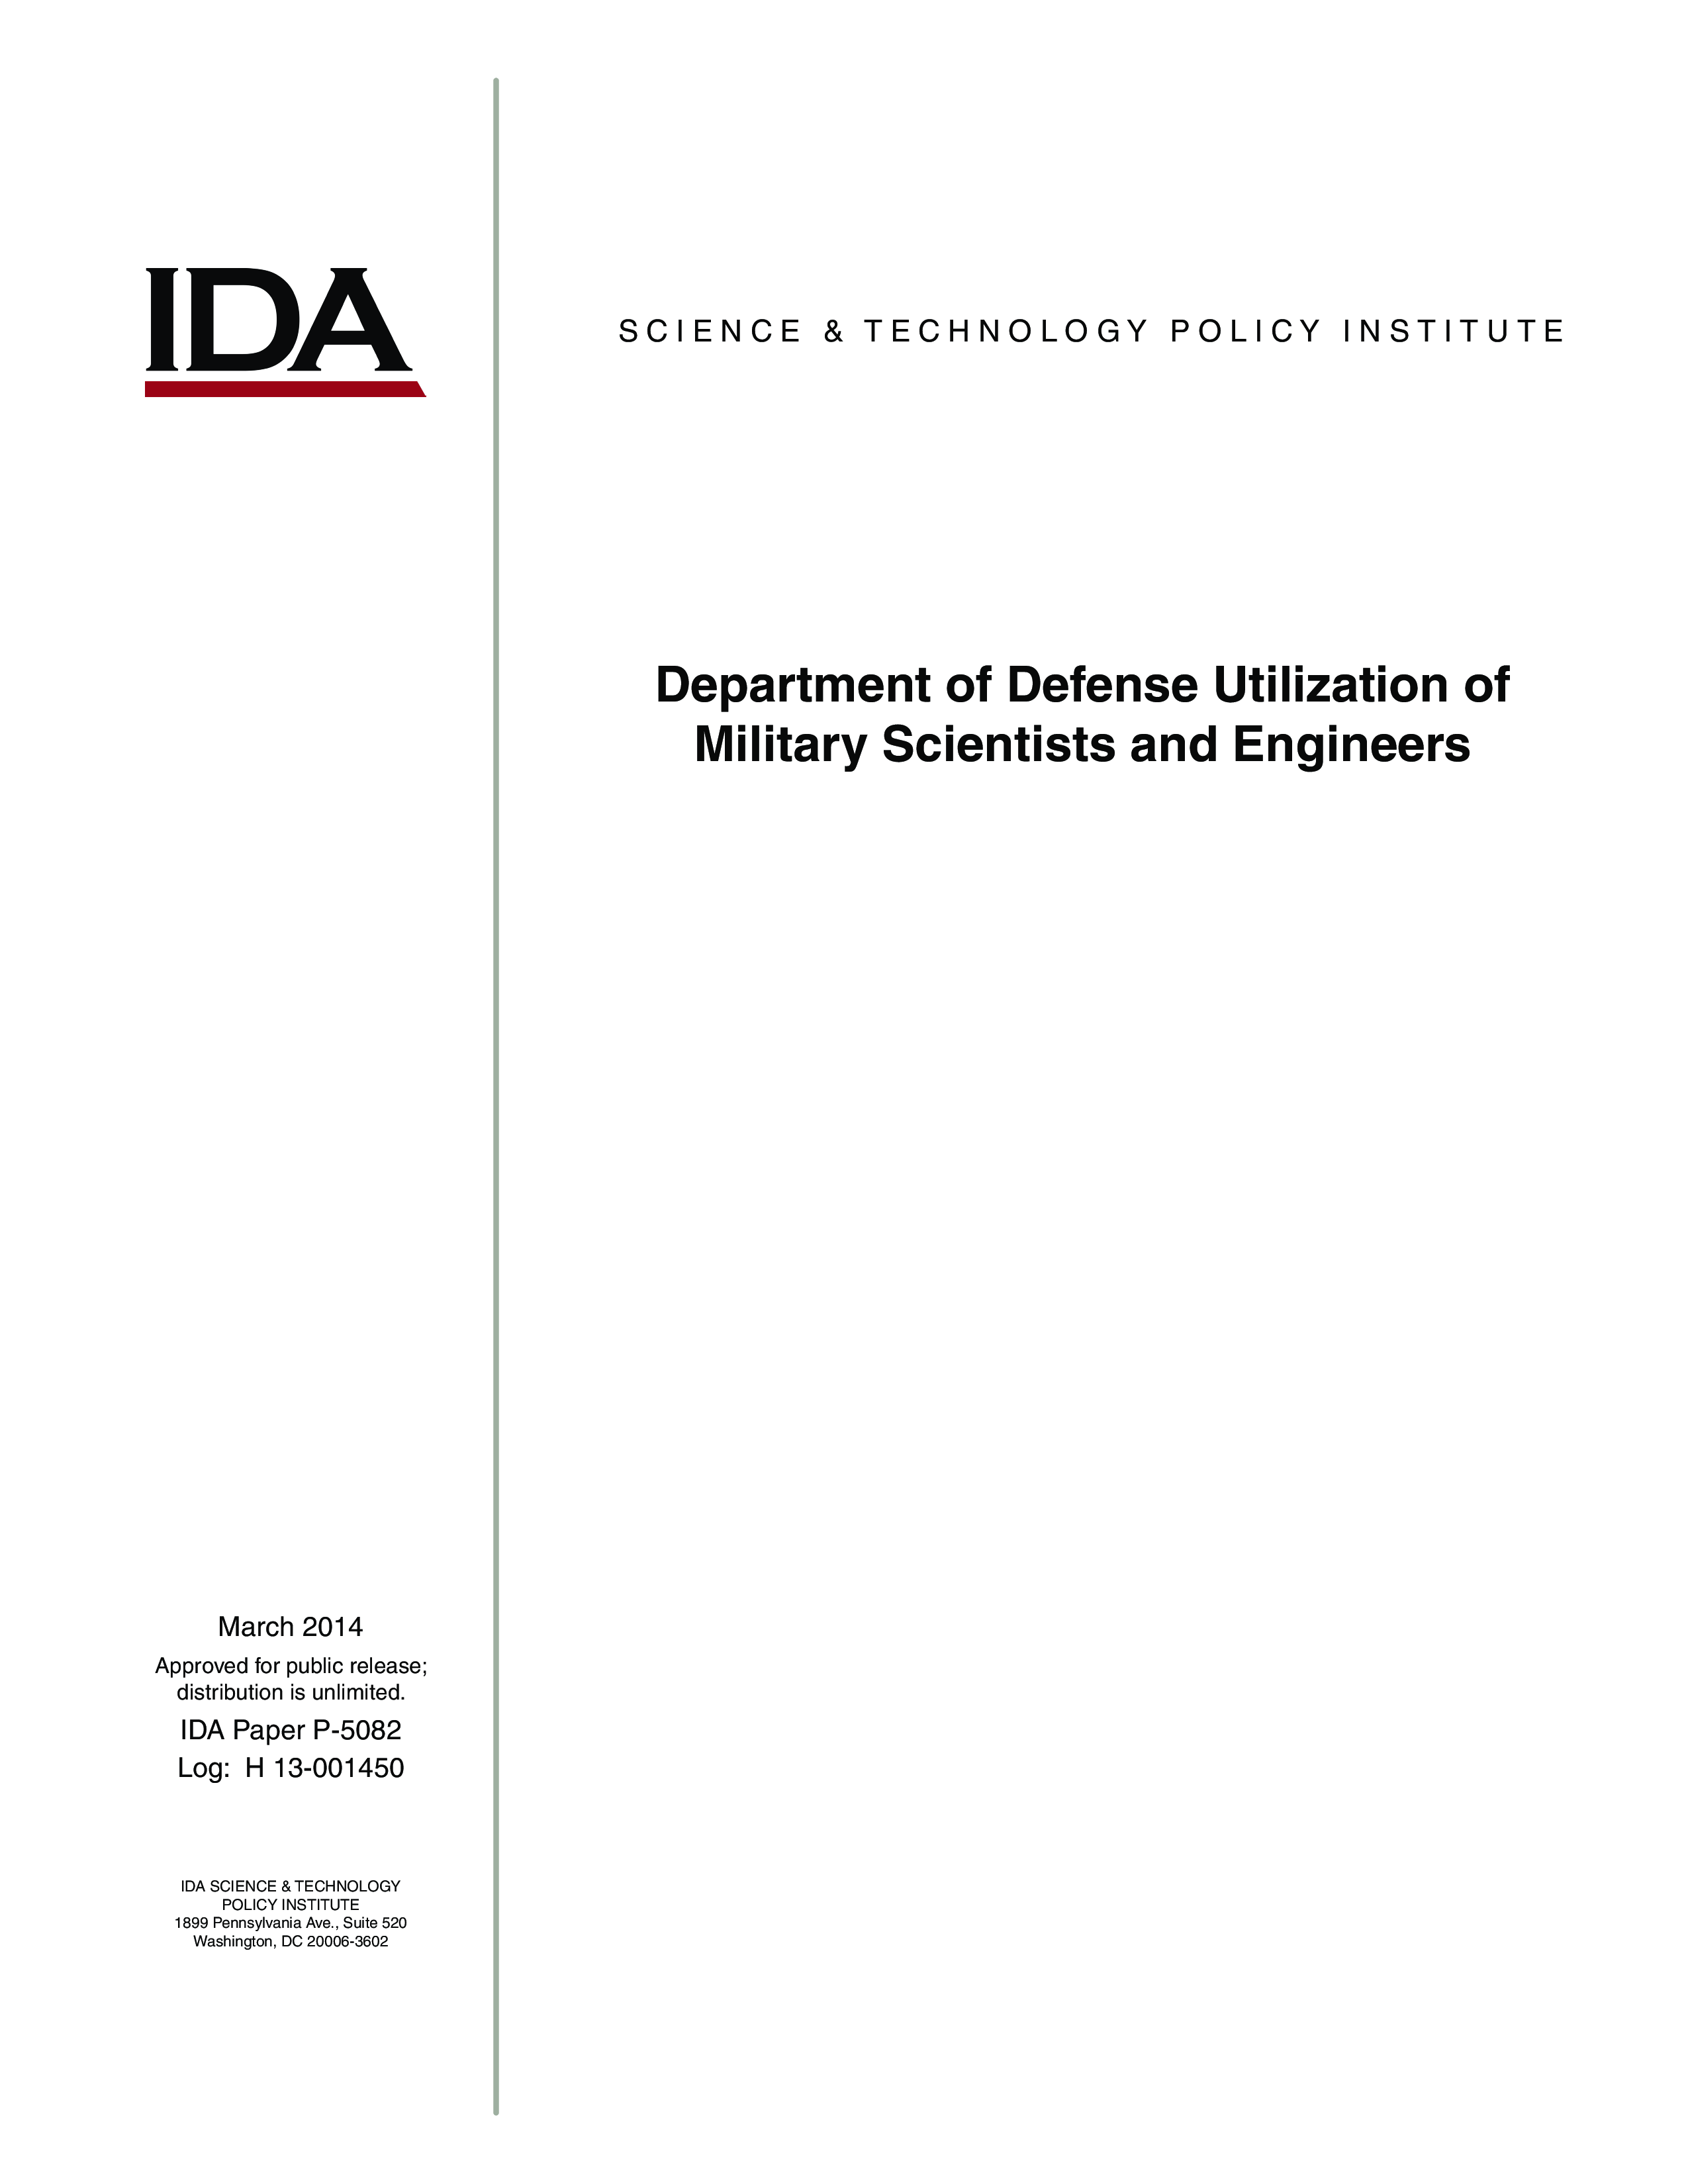 Department of Defense Utilization of Military Scientists and Engineers